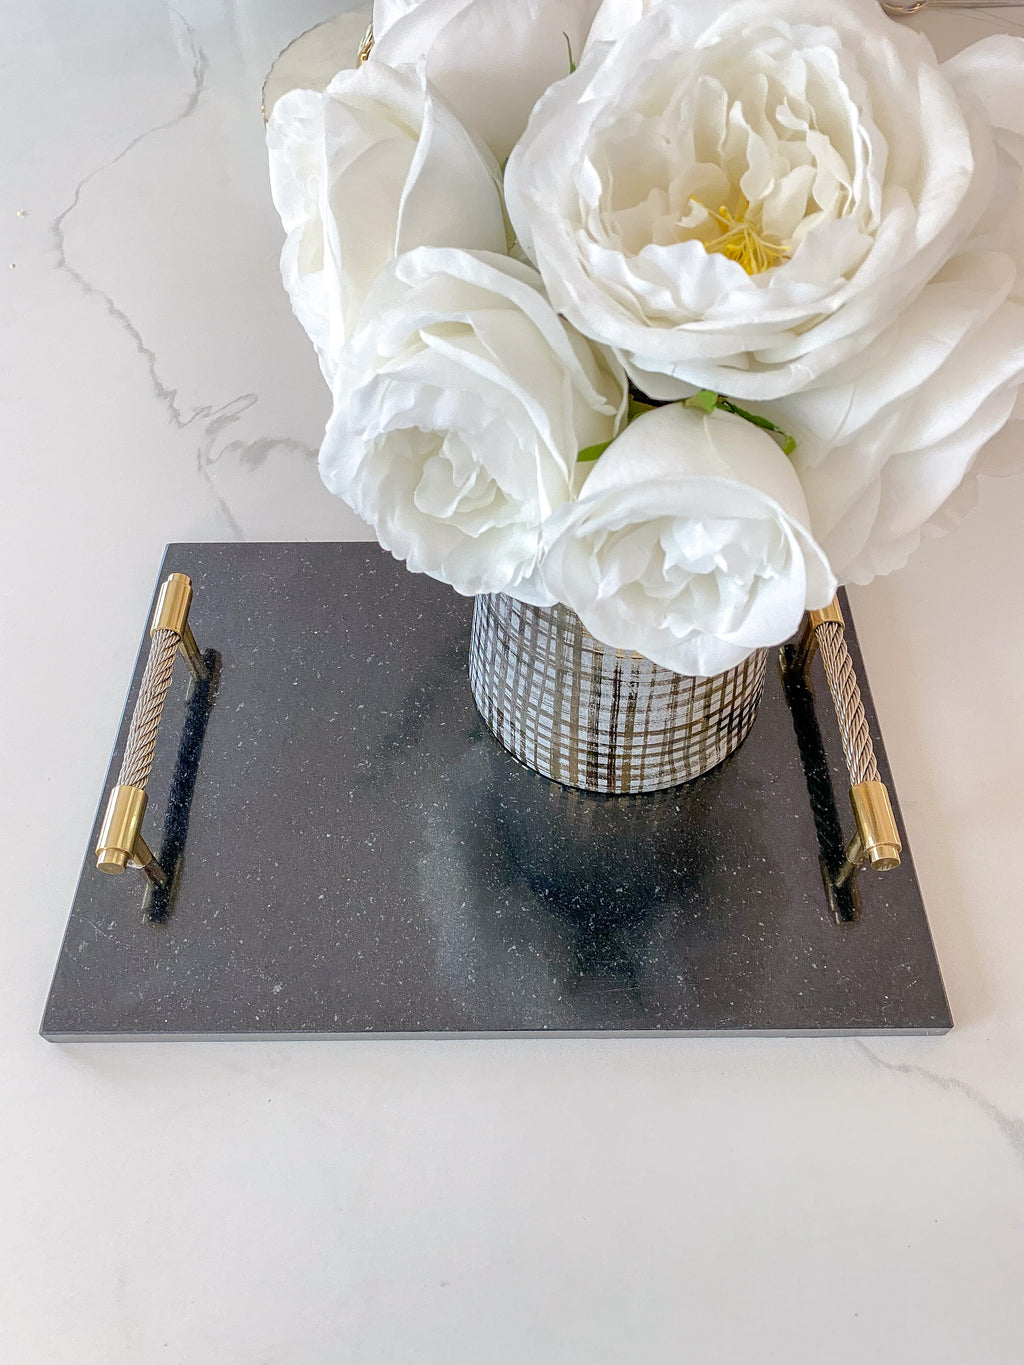 Black Marble Tray w/ Coil Handles and Knife-Inspire Me! Home Decor